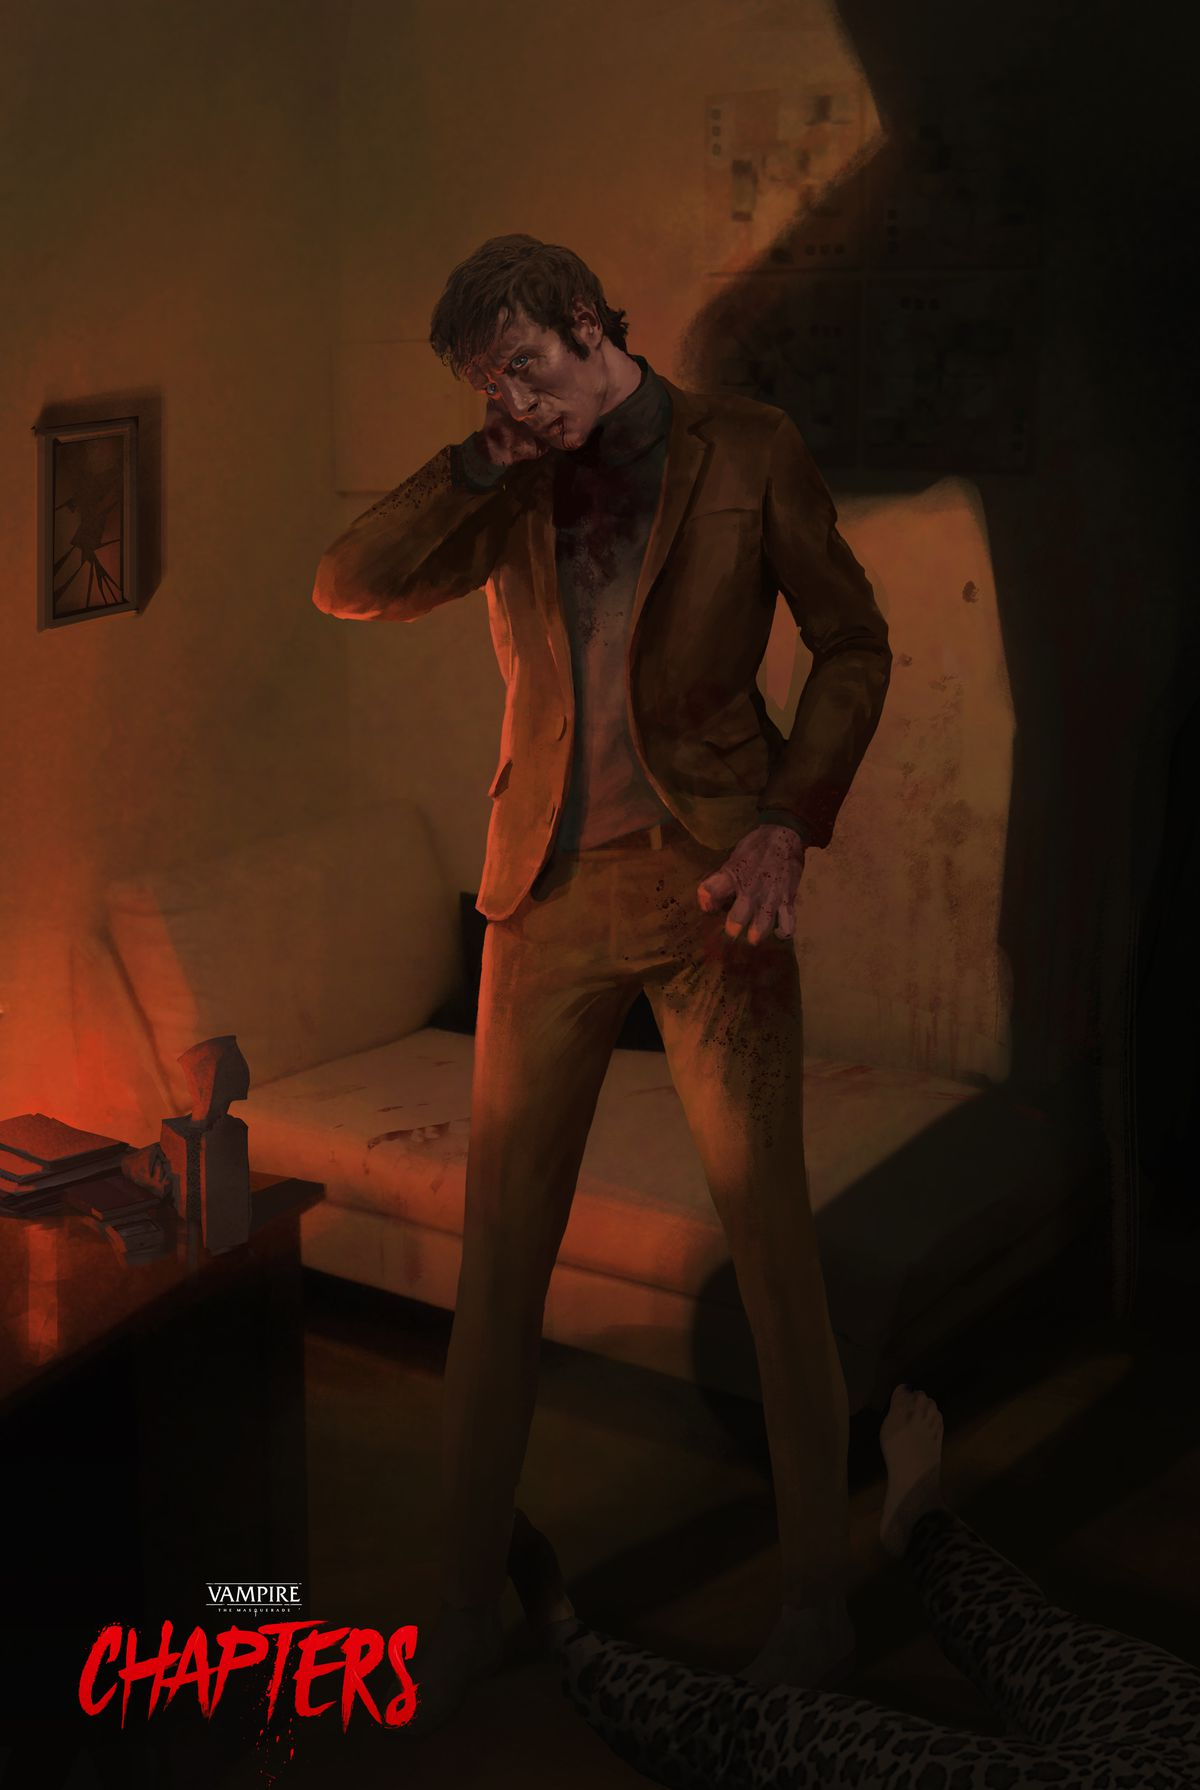 A man stands over a body in a bloody apartment. His neck is bleeding. He's wearing a well tailored brown suit.